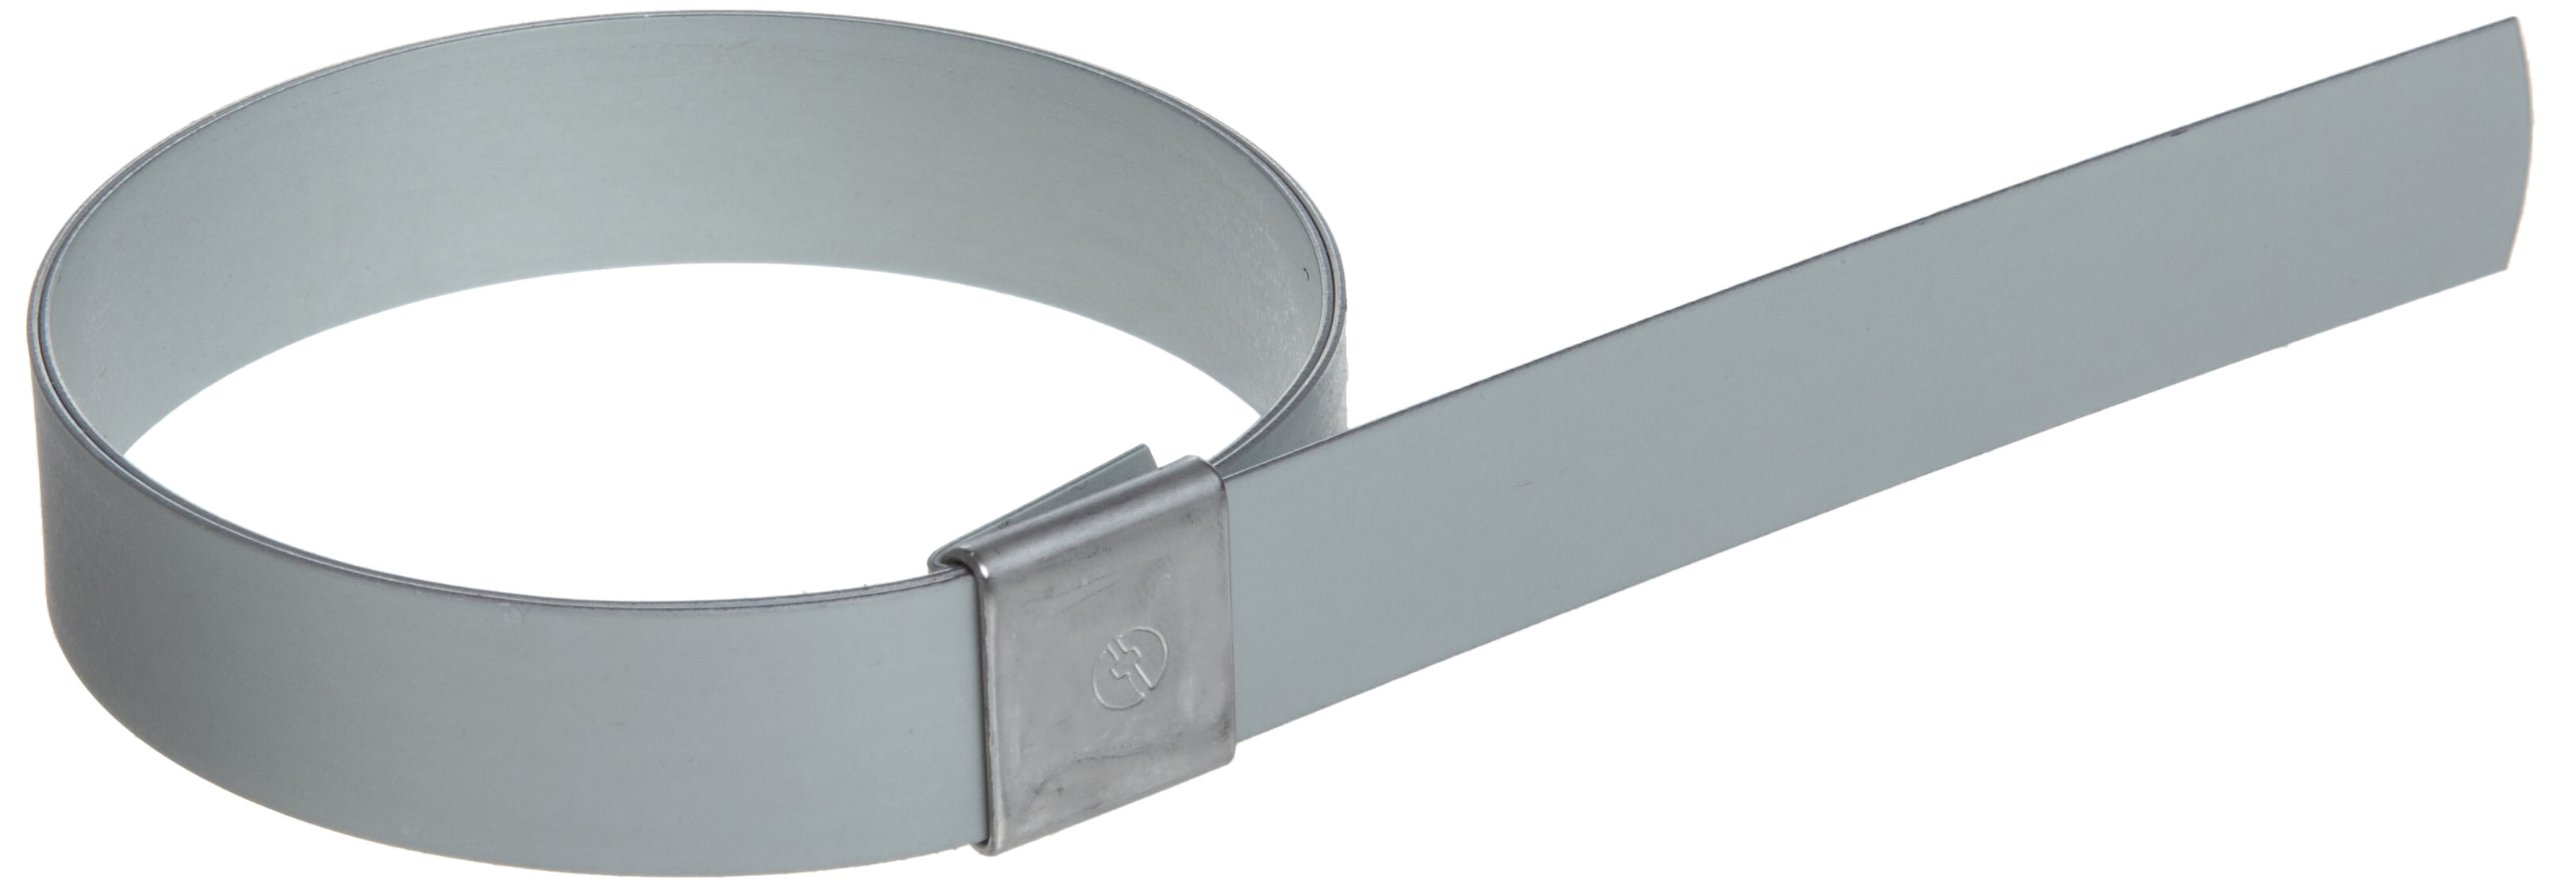 BAND-IT CP1099 5/8'' Wide x 0.025'' Thick 2-1/2'' Diameter, Galvanized Carbon Steel Center Punch Clamp (50 Per Box) by Band-It